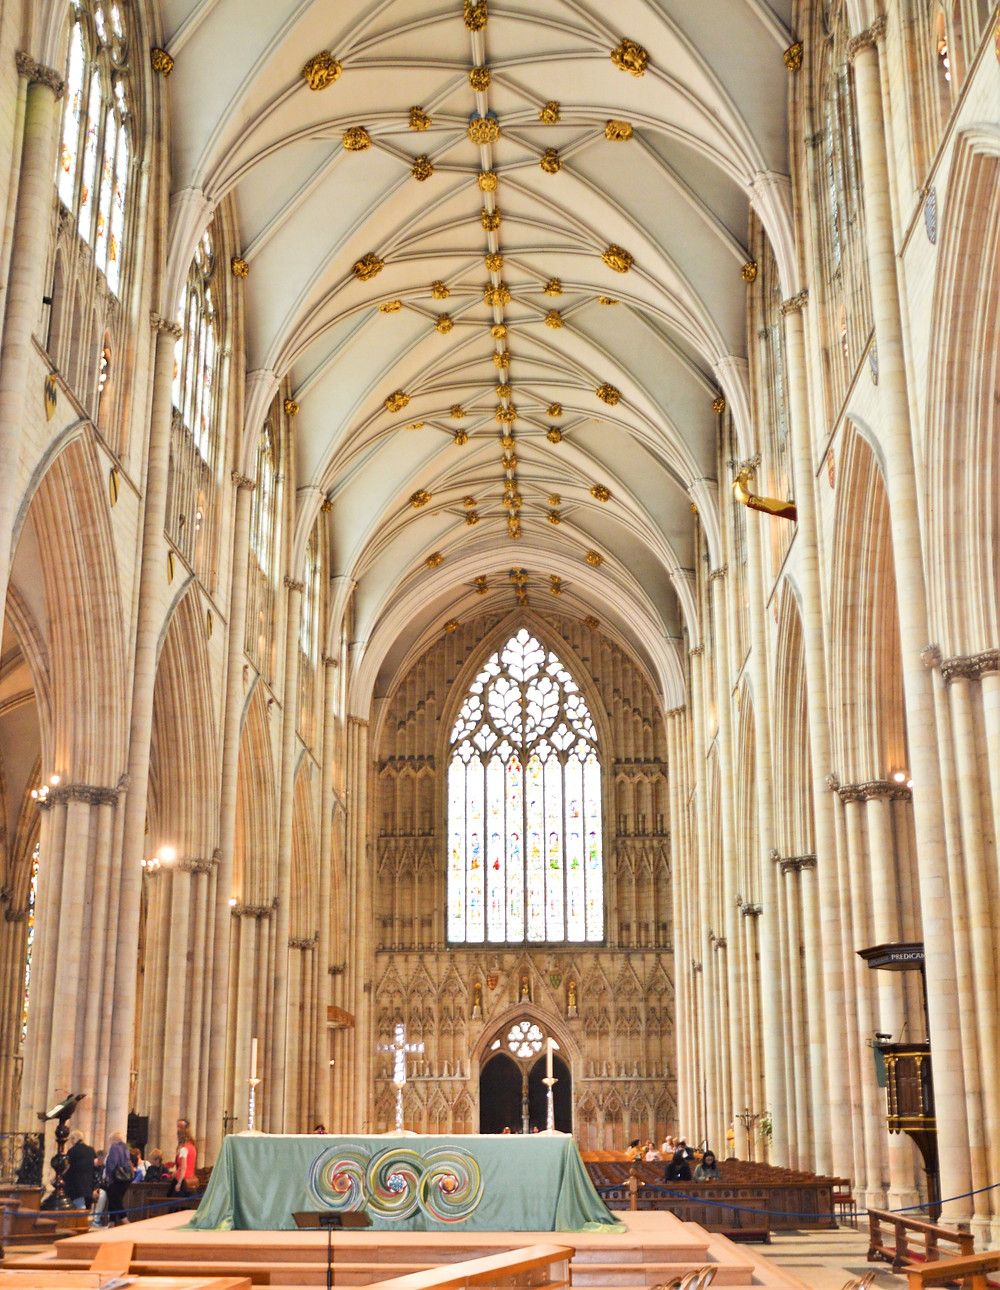 Nave of York Minster completed in 1350.  Widest gothic nave in England